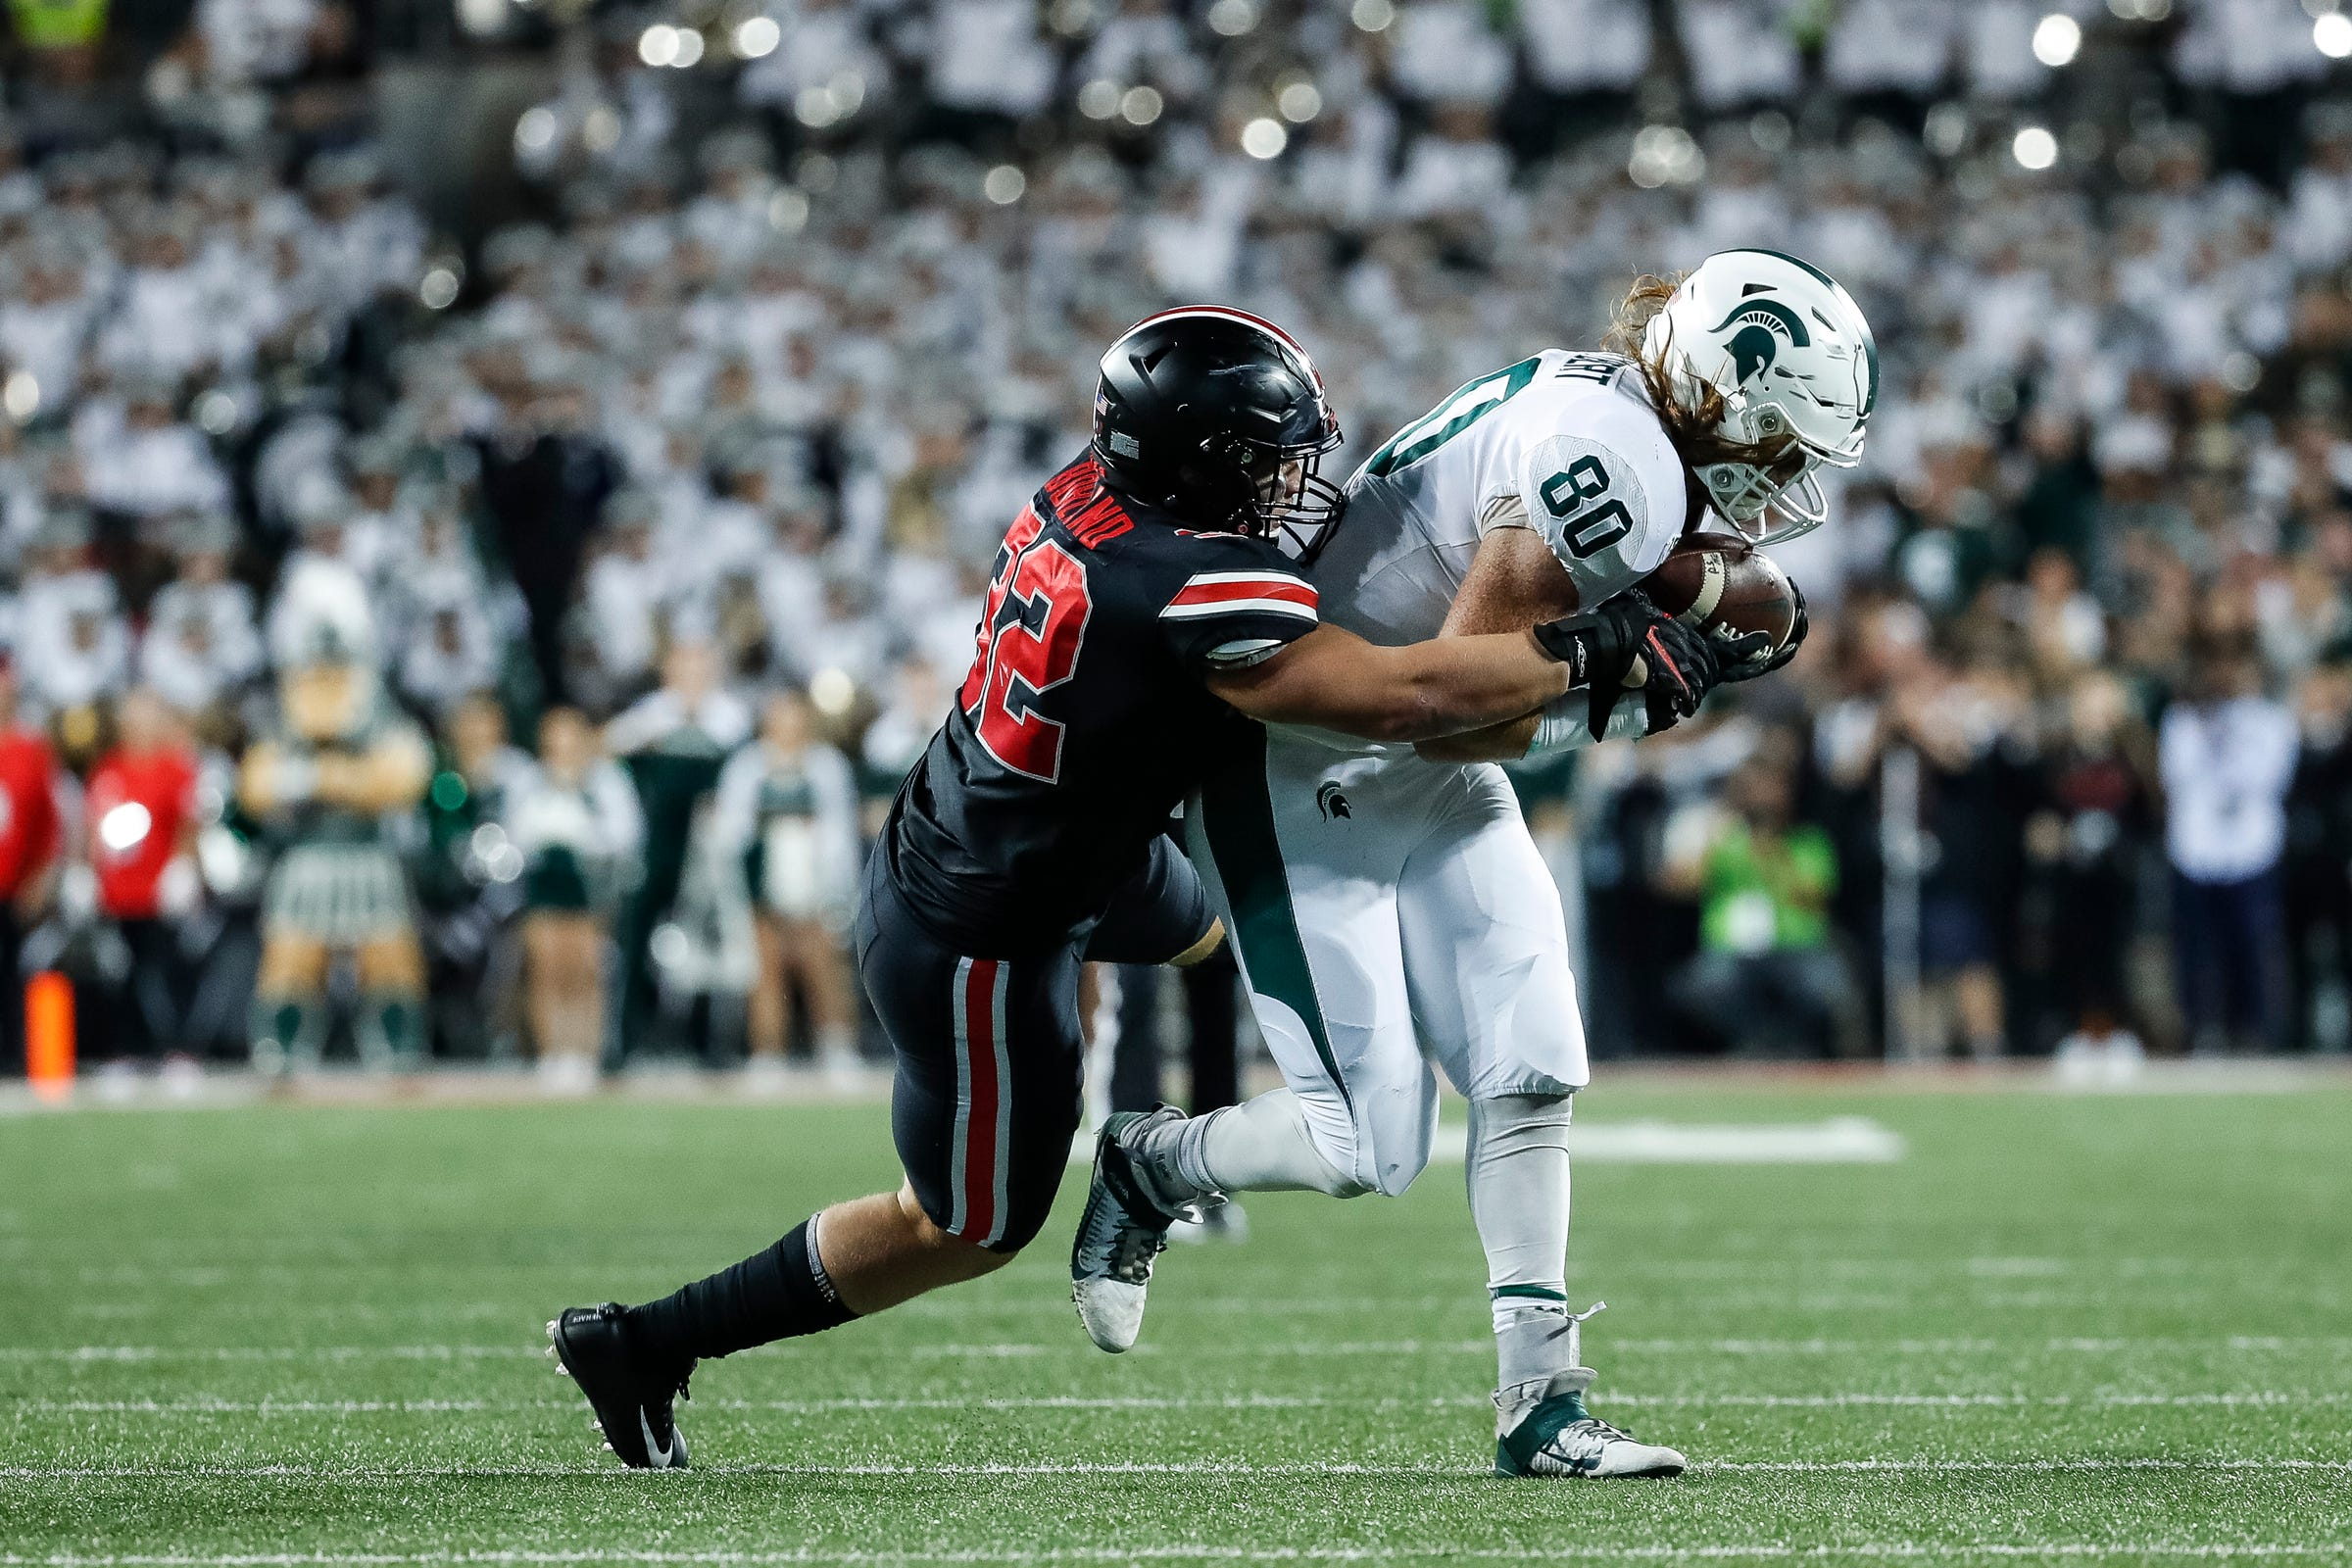 Opinion: Ohio State s easy defeat of Michigan State exposes talent gap between programs